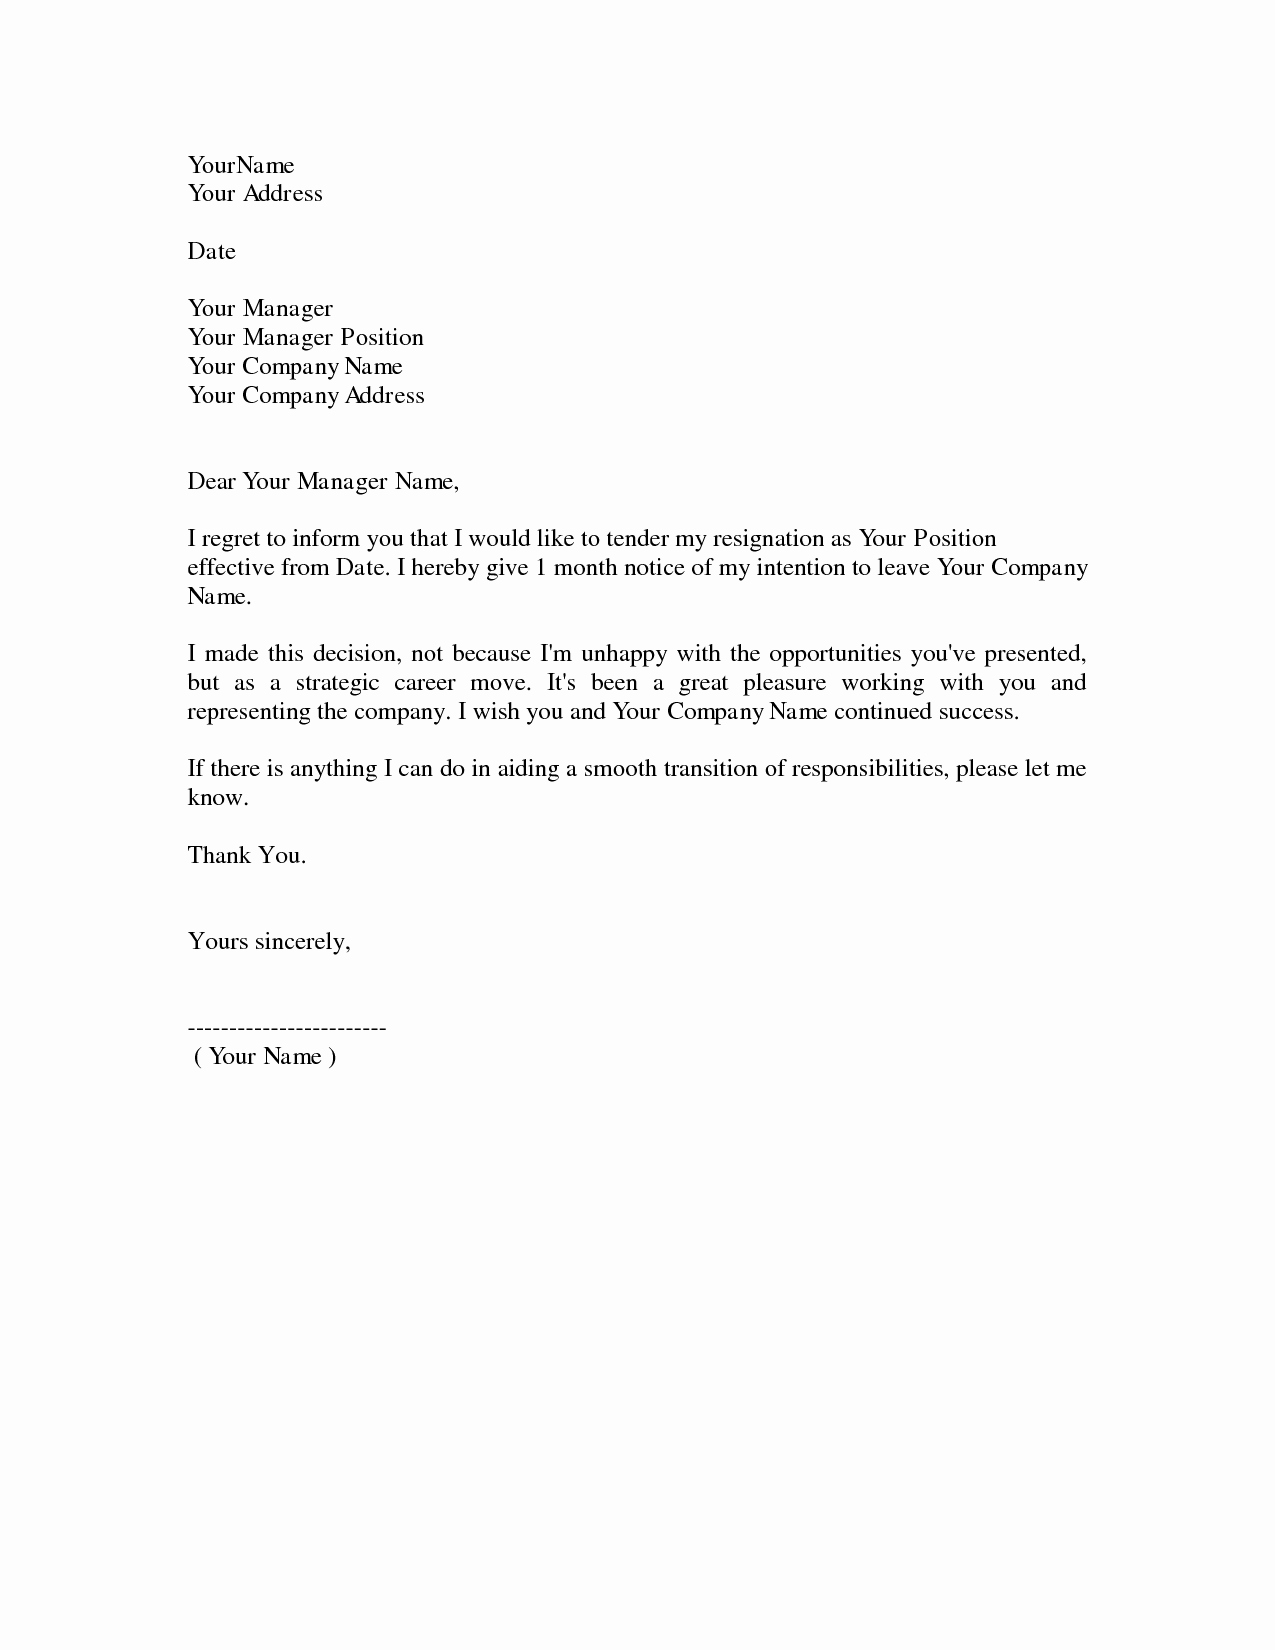 Resignation Letter Template Free Elegant Download Resignation Letters Pdf & Doc